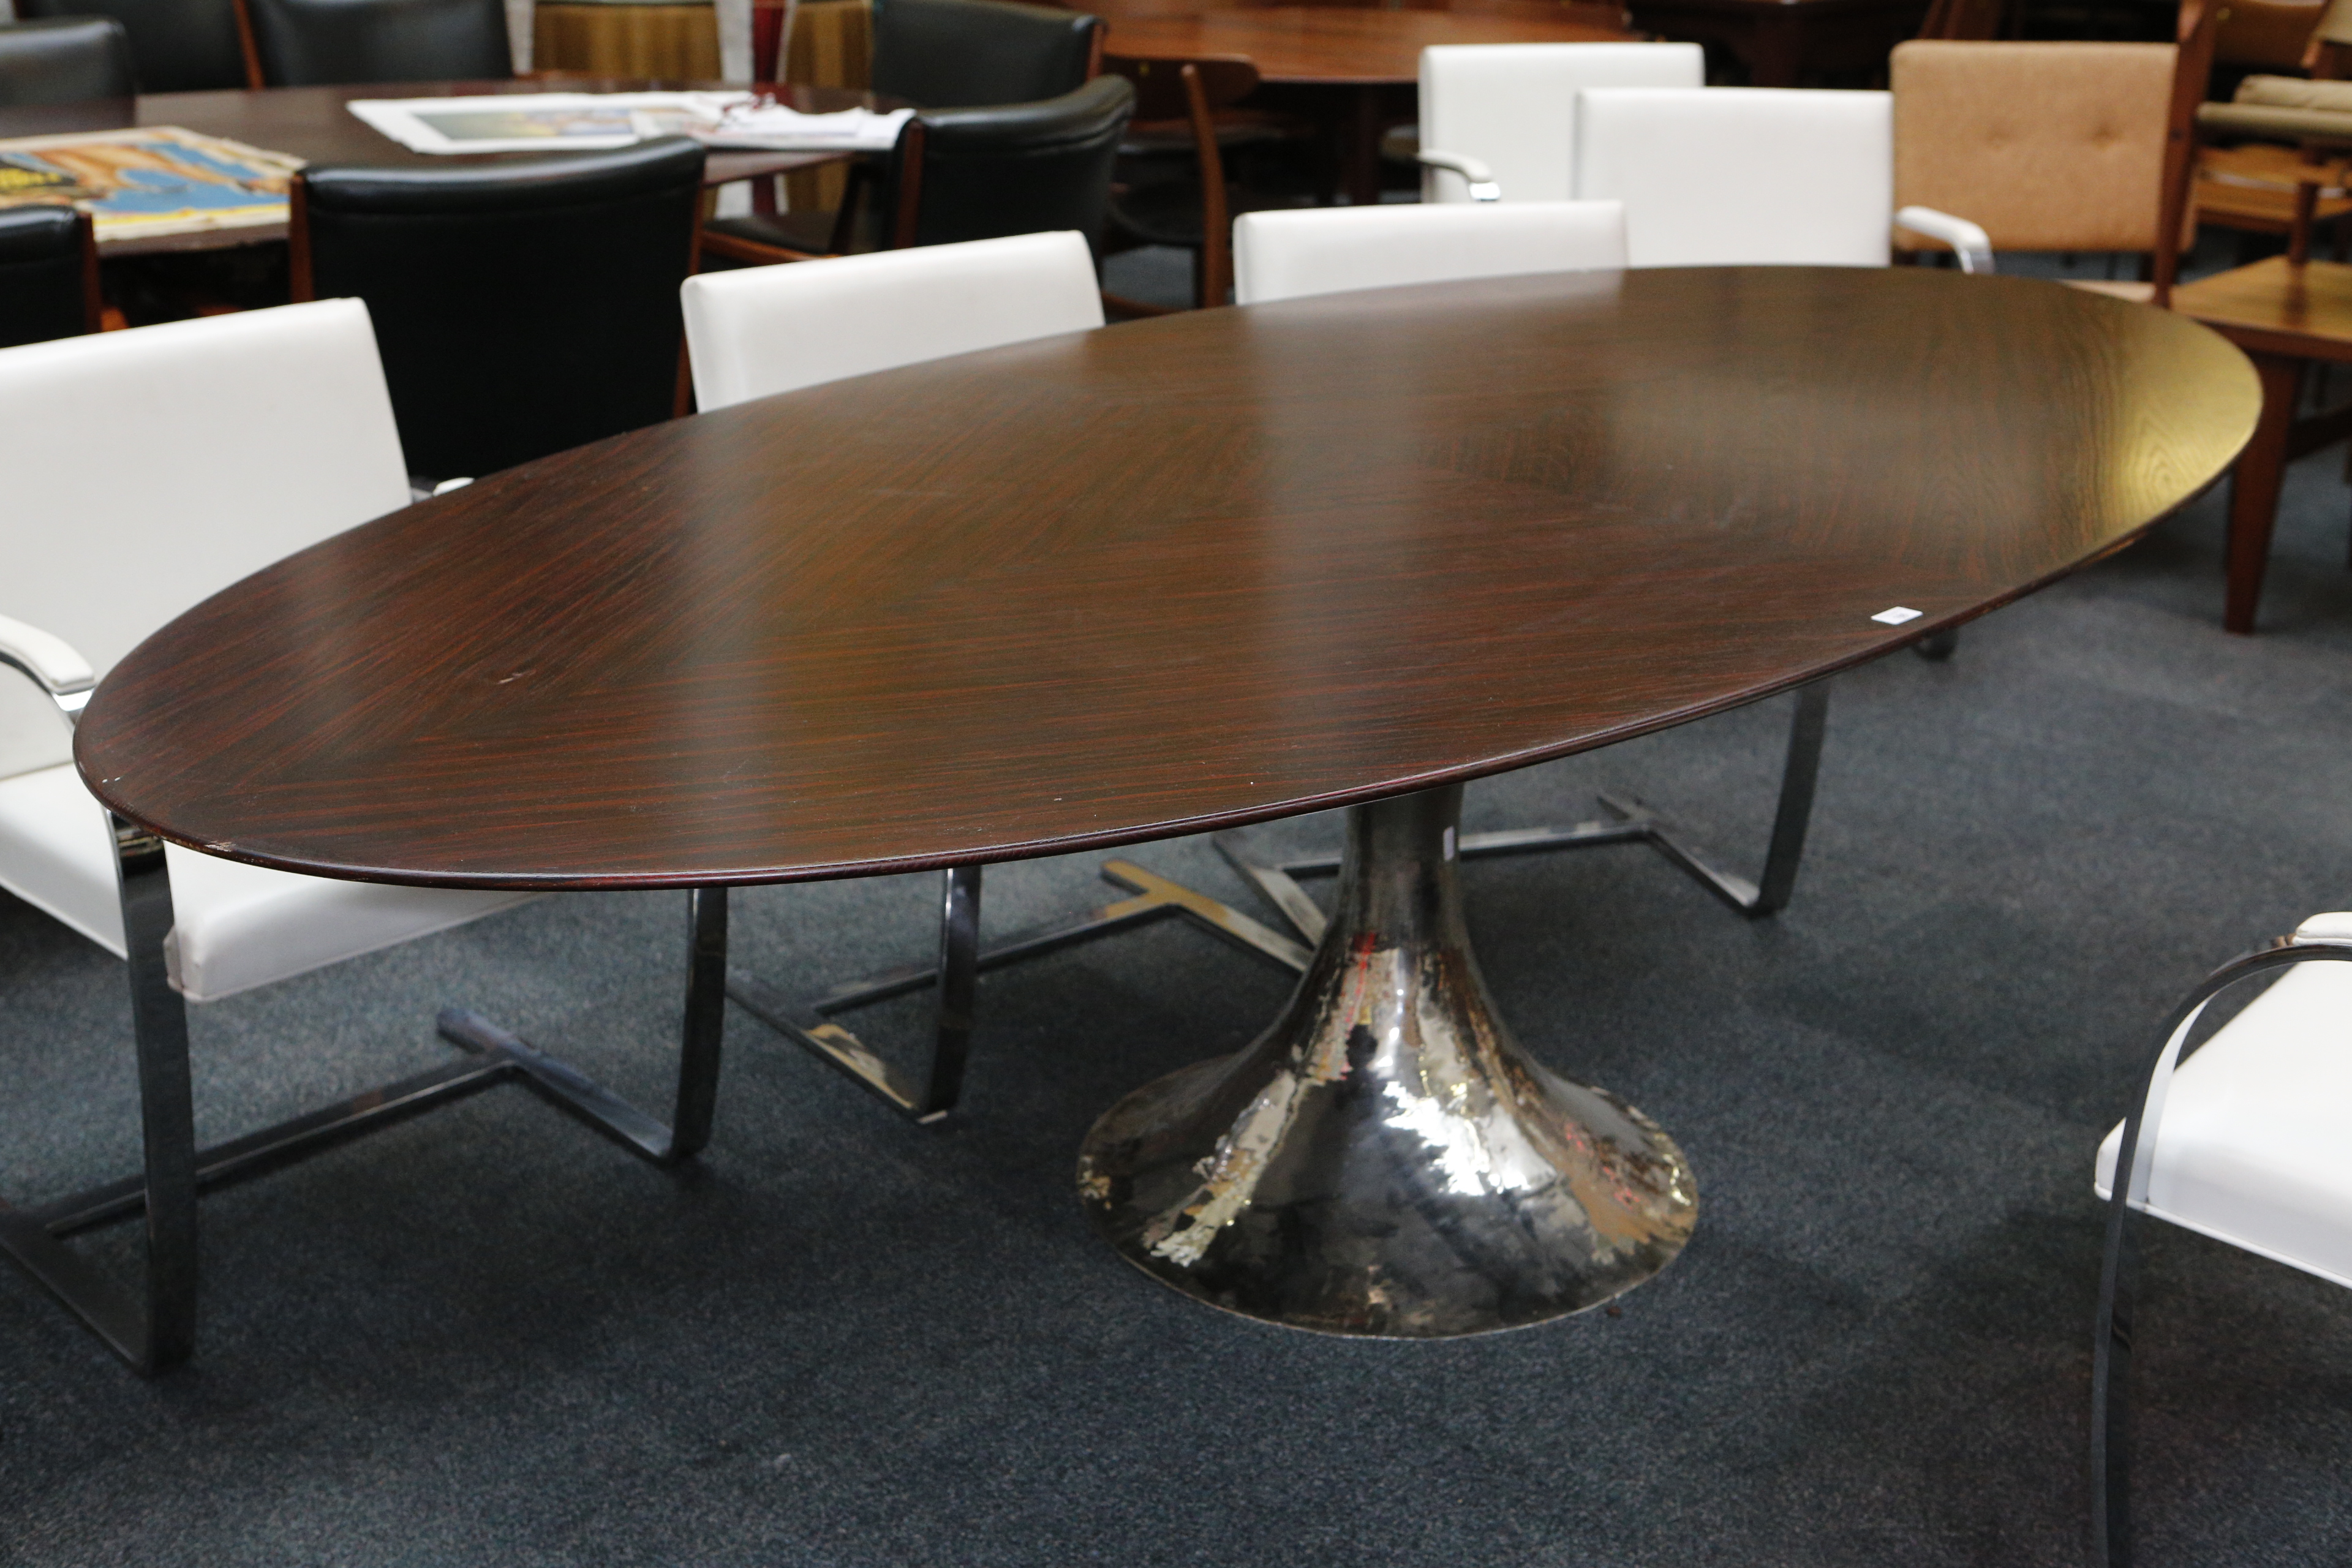 A Julian Chichester Dakota Dining Table 21st Century Elliptical